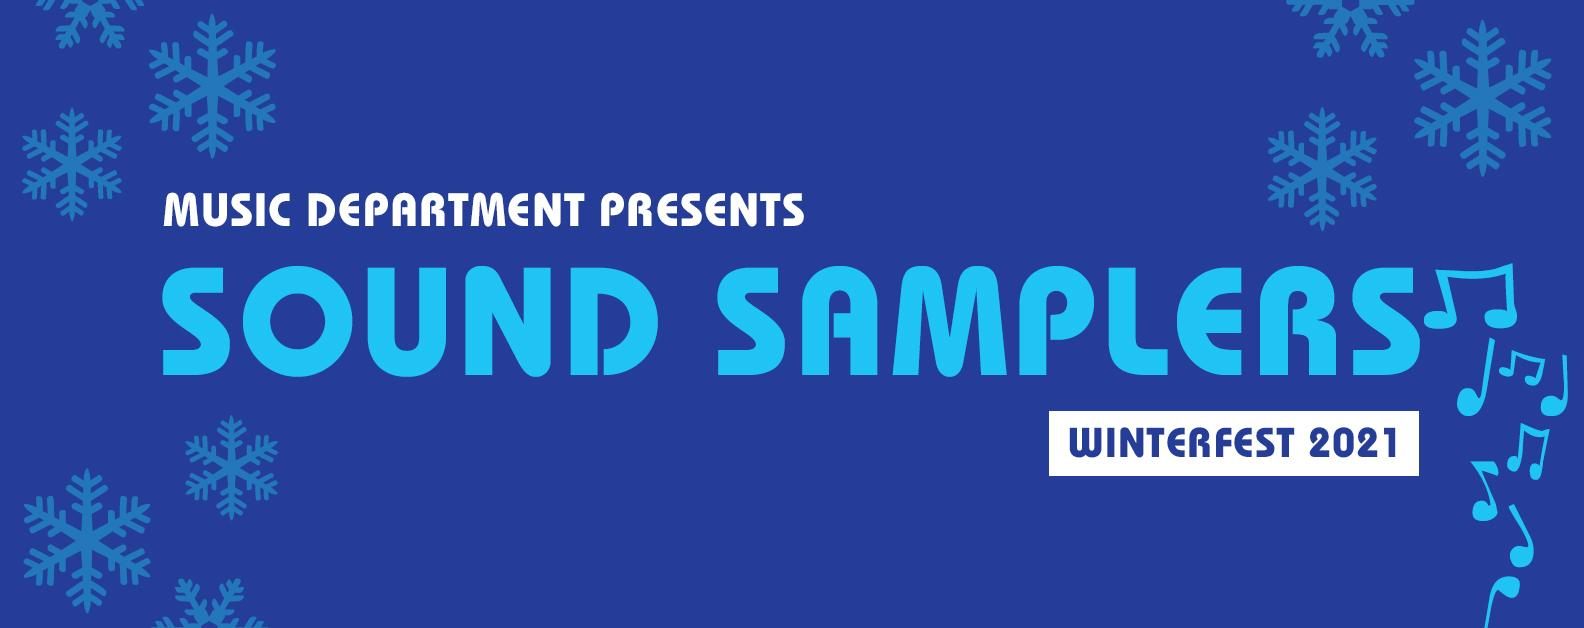 Music Department Presents Sound Samplers Winterfest 2021